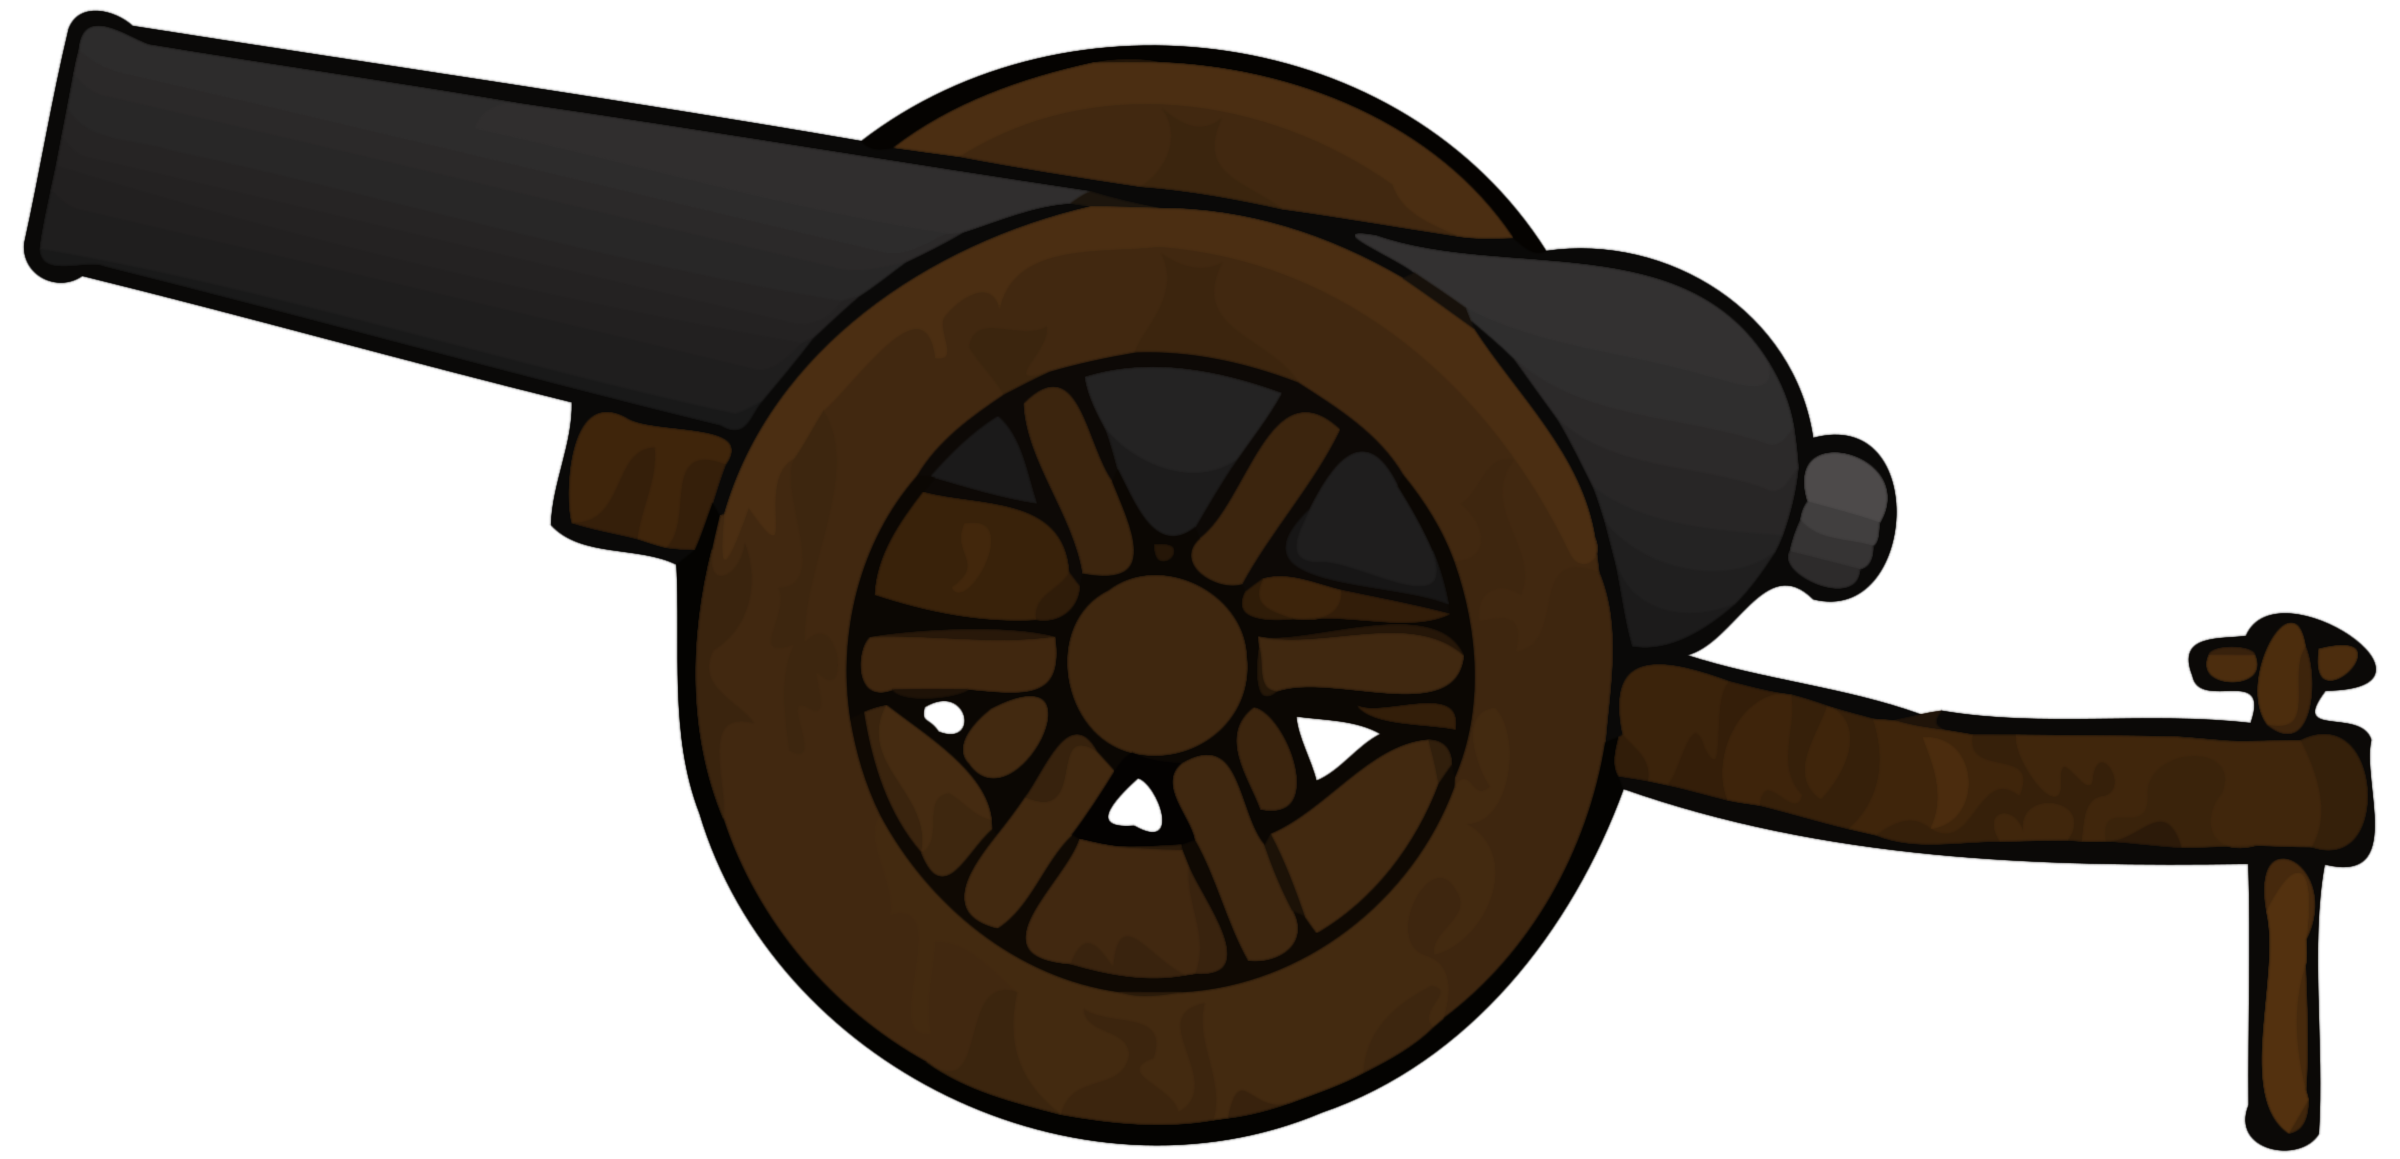 Cannon 3 by Firkin